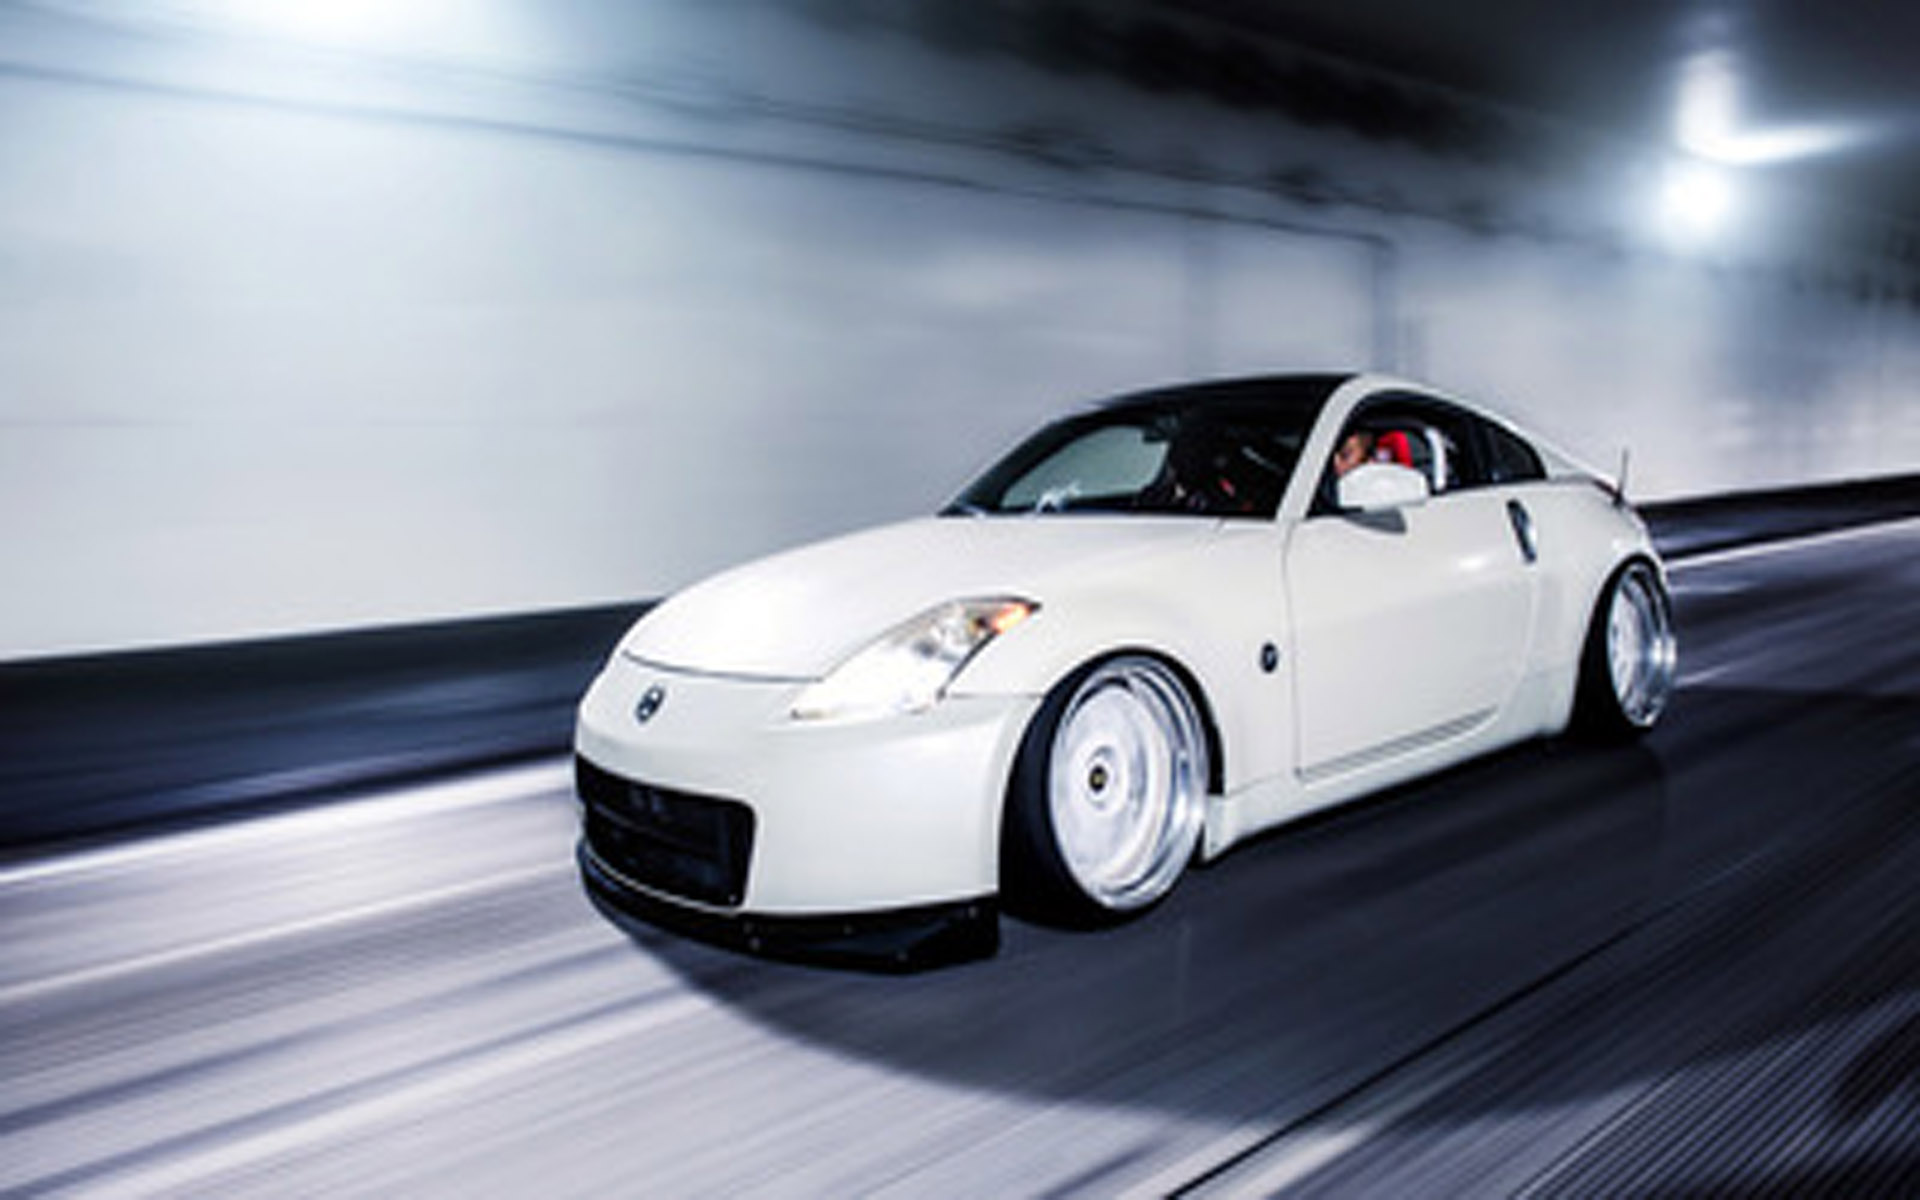 nissan white 350z hd wallpaper hd latest wallpapers. Black Bedroom Furniture Sets. Home Design Ideas